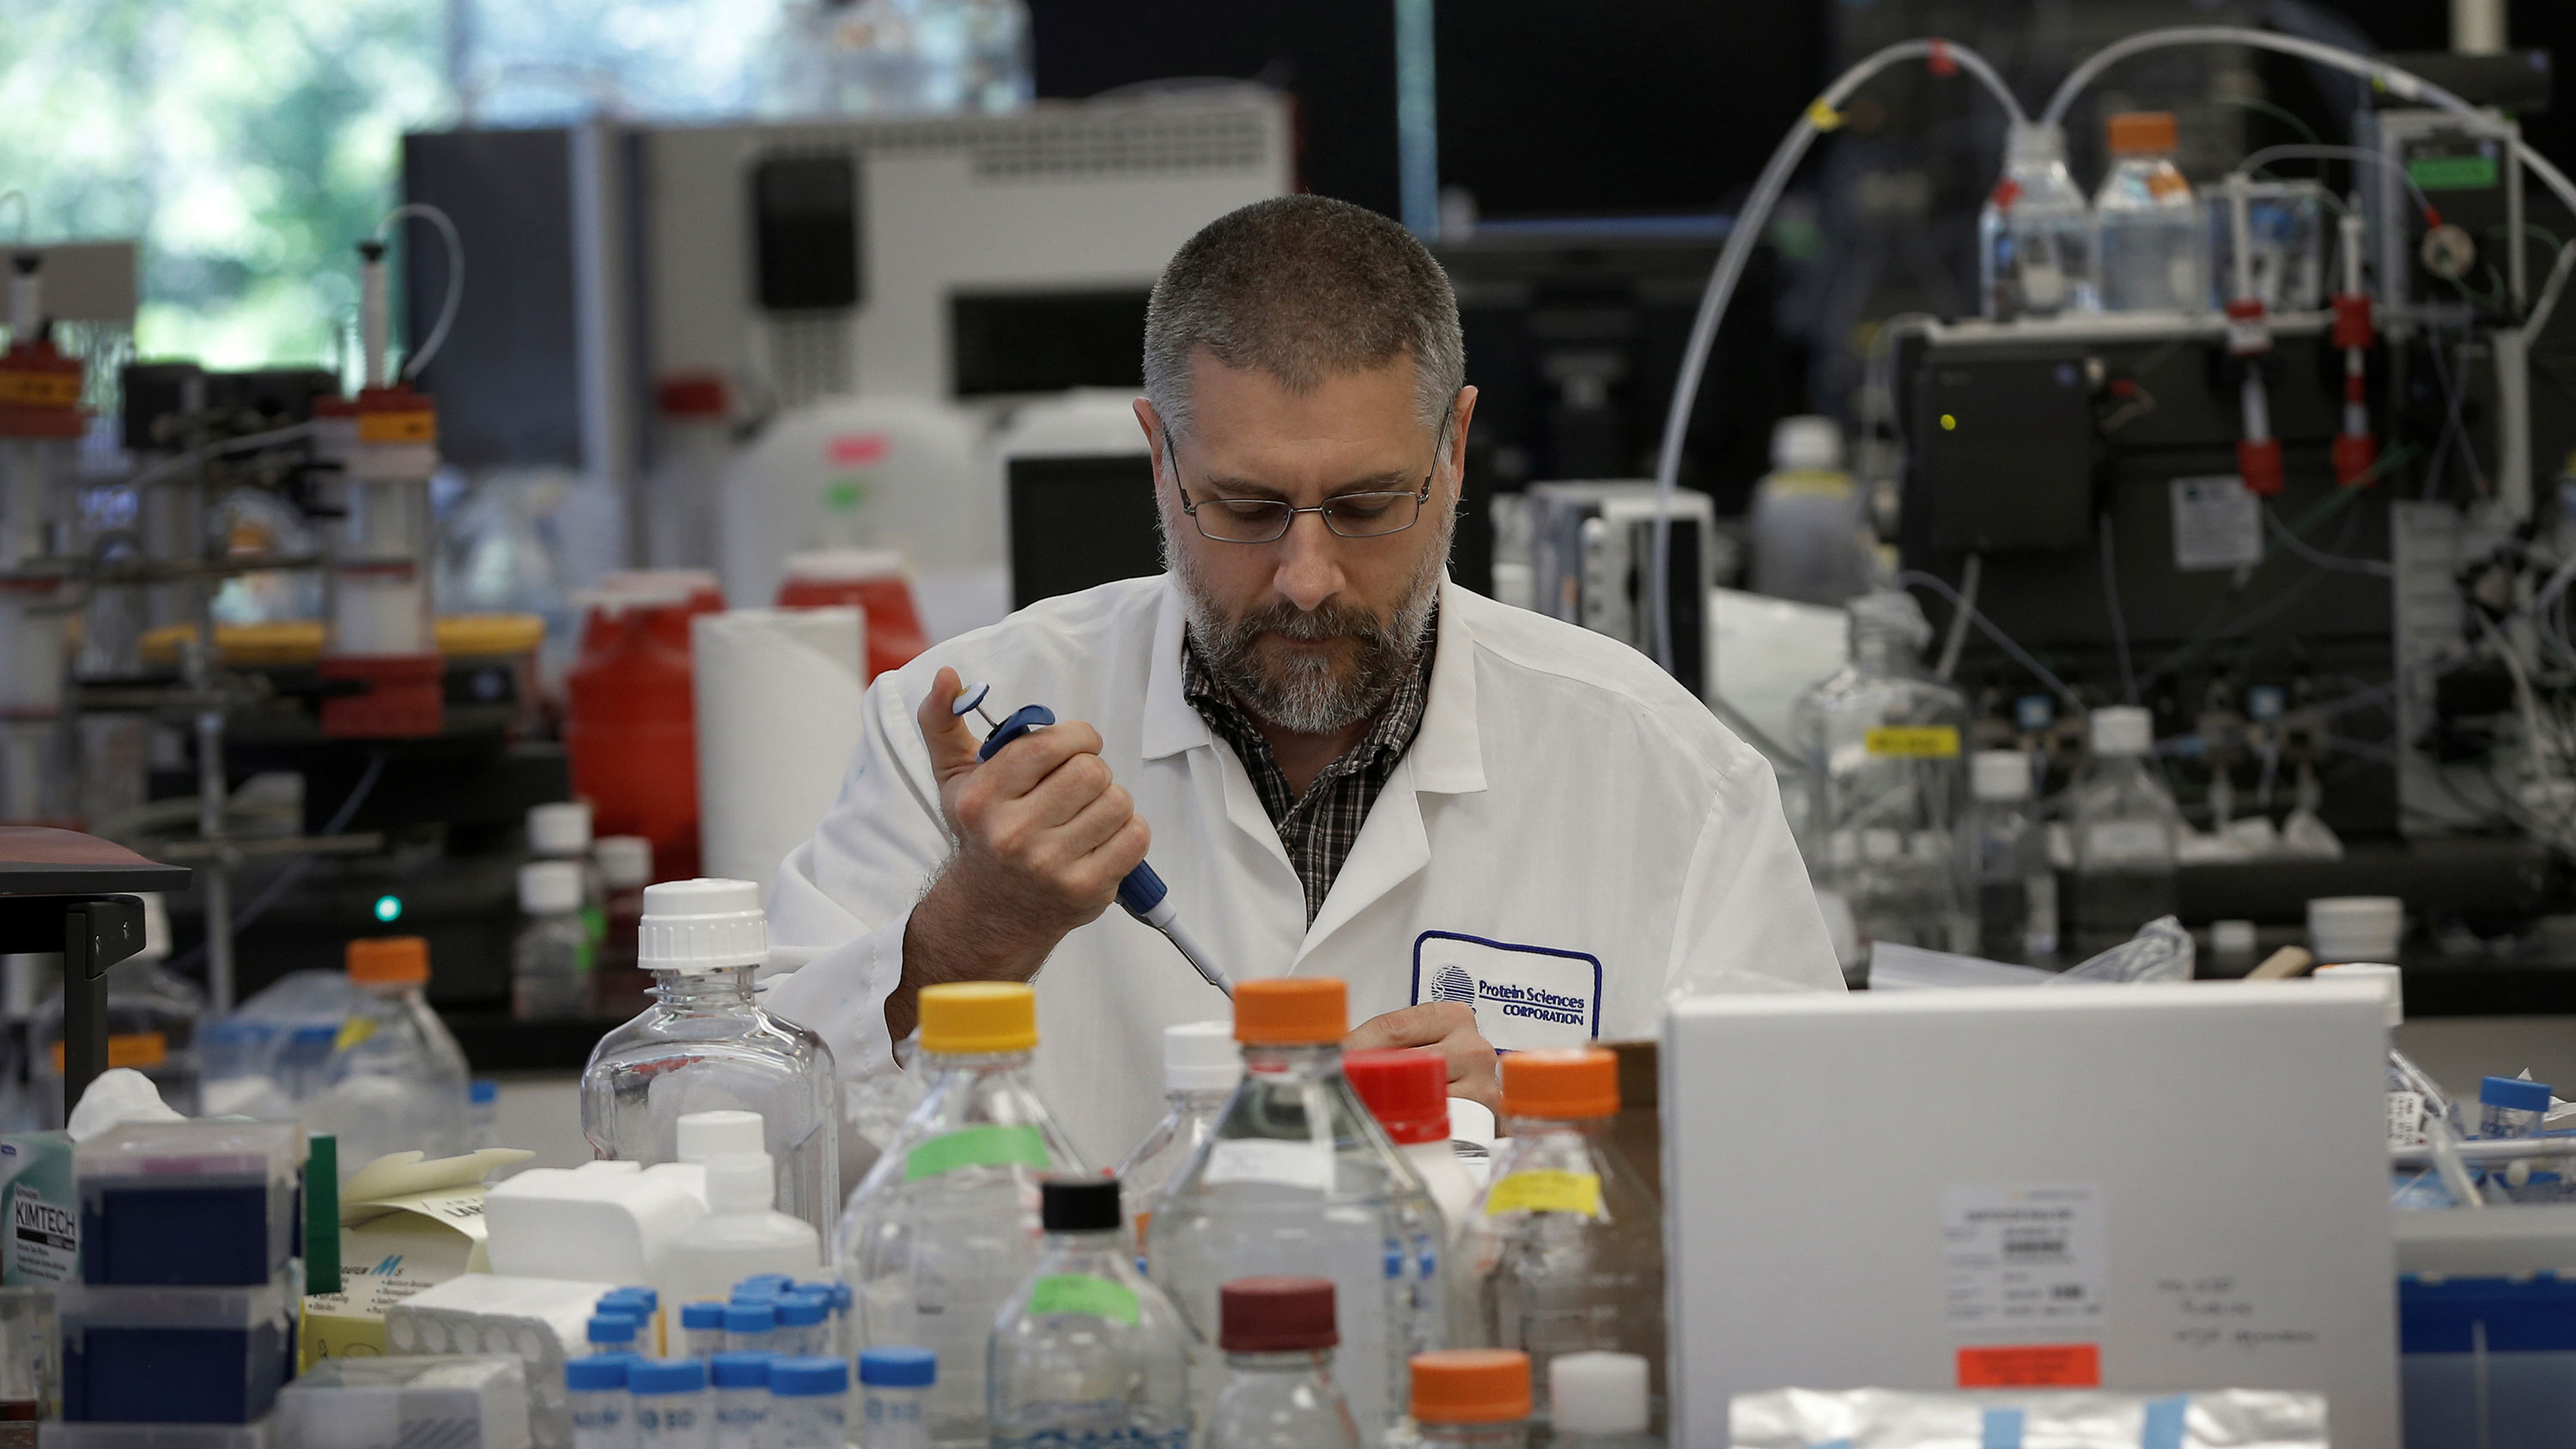 Picture shows the researcher pipetting into vials in a laboratory surrounded by chemical bottles and instruments.